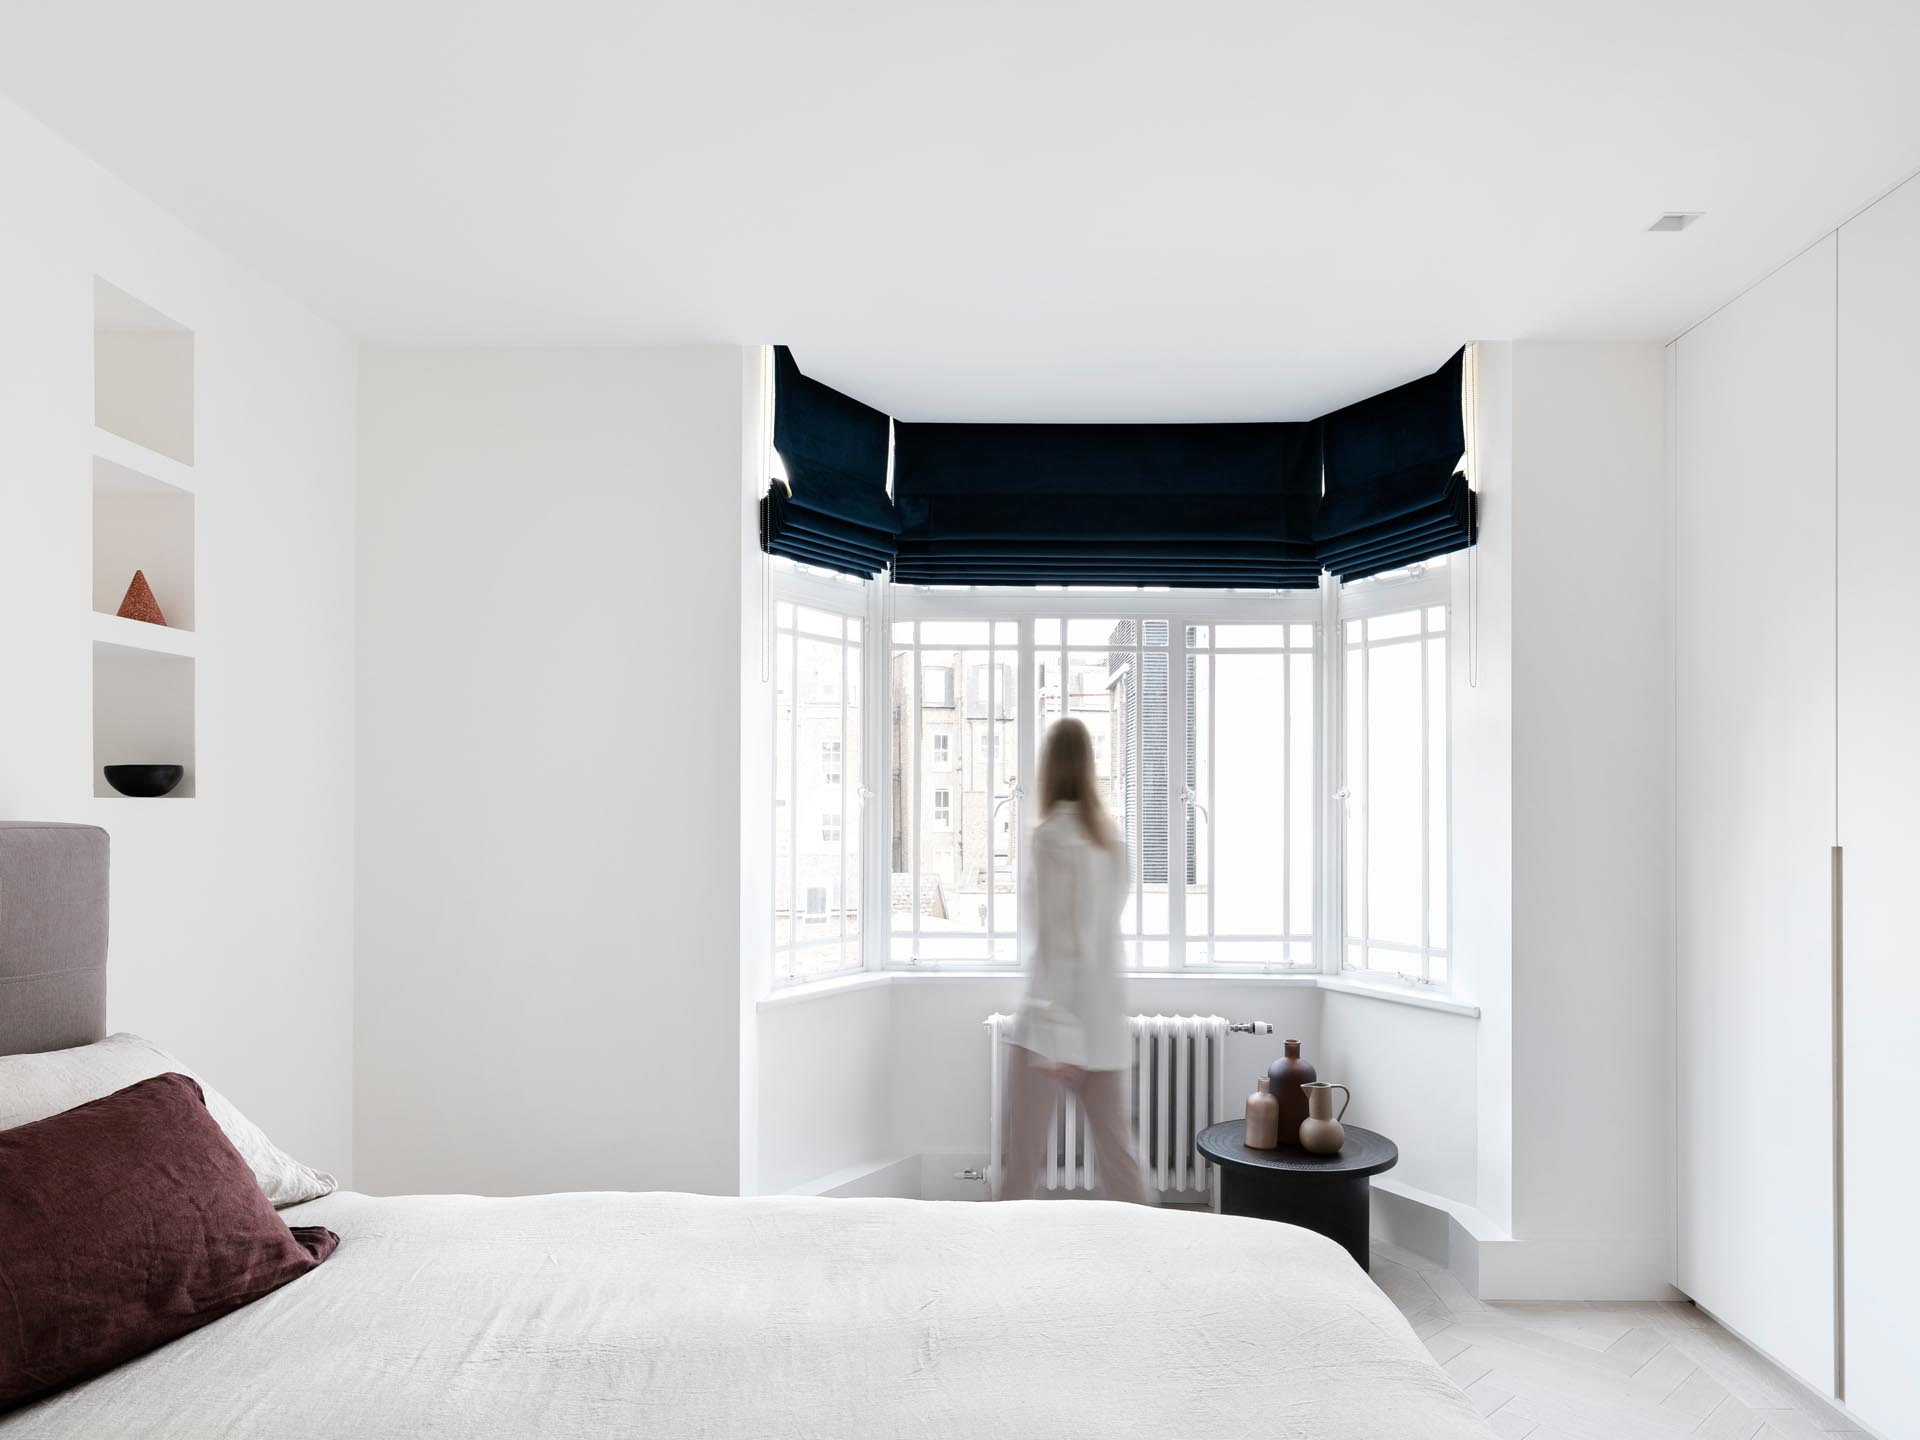 In this remodeled bedroom, the designers opened-up hidden wall niches, lowered the ceilings to hide curtain tracks, and created bespoke wardrobes.